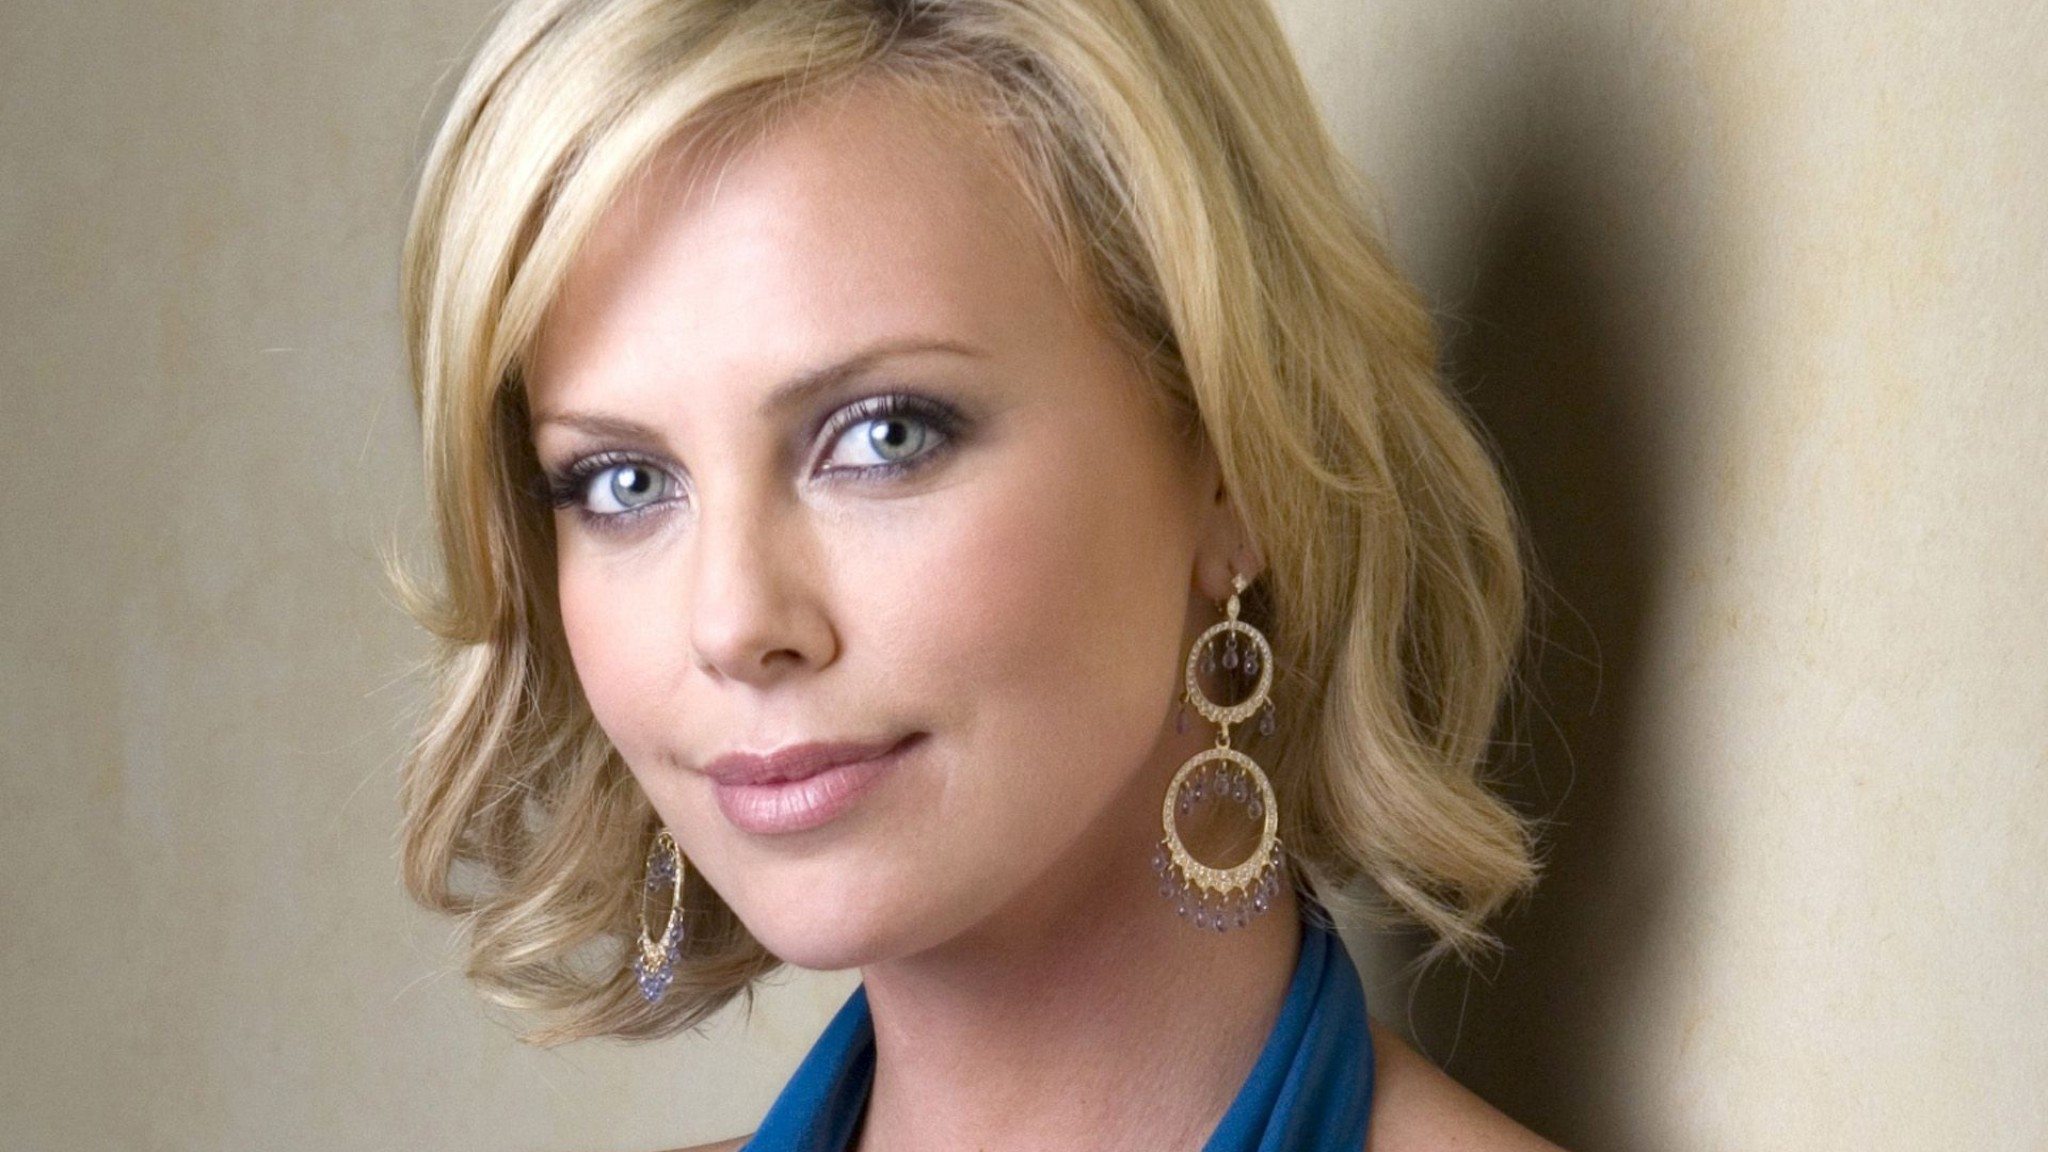 Charlize Theron Wallpapers High Resolution and Quality Download